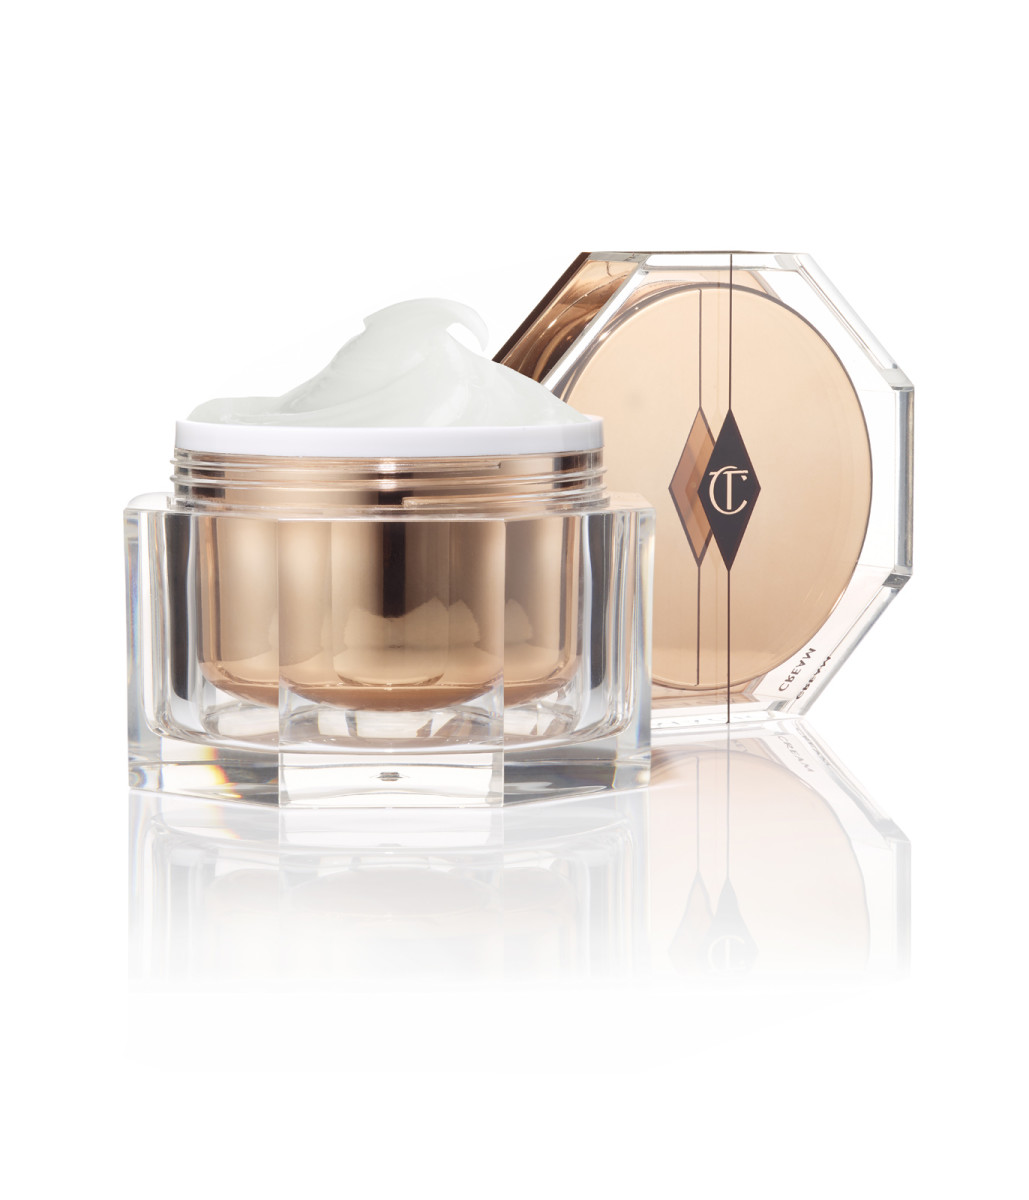 charlotte tilbury holiday 2016 giant magic cream